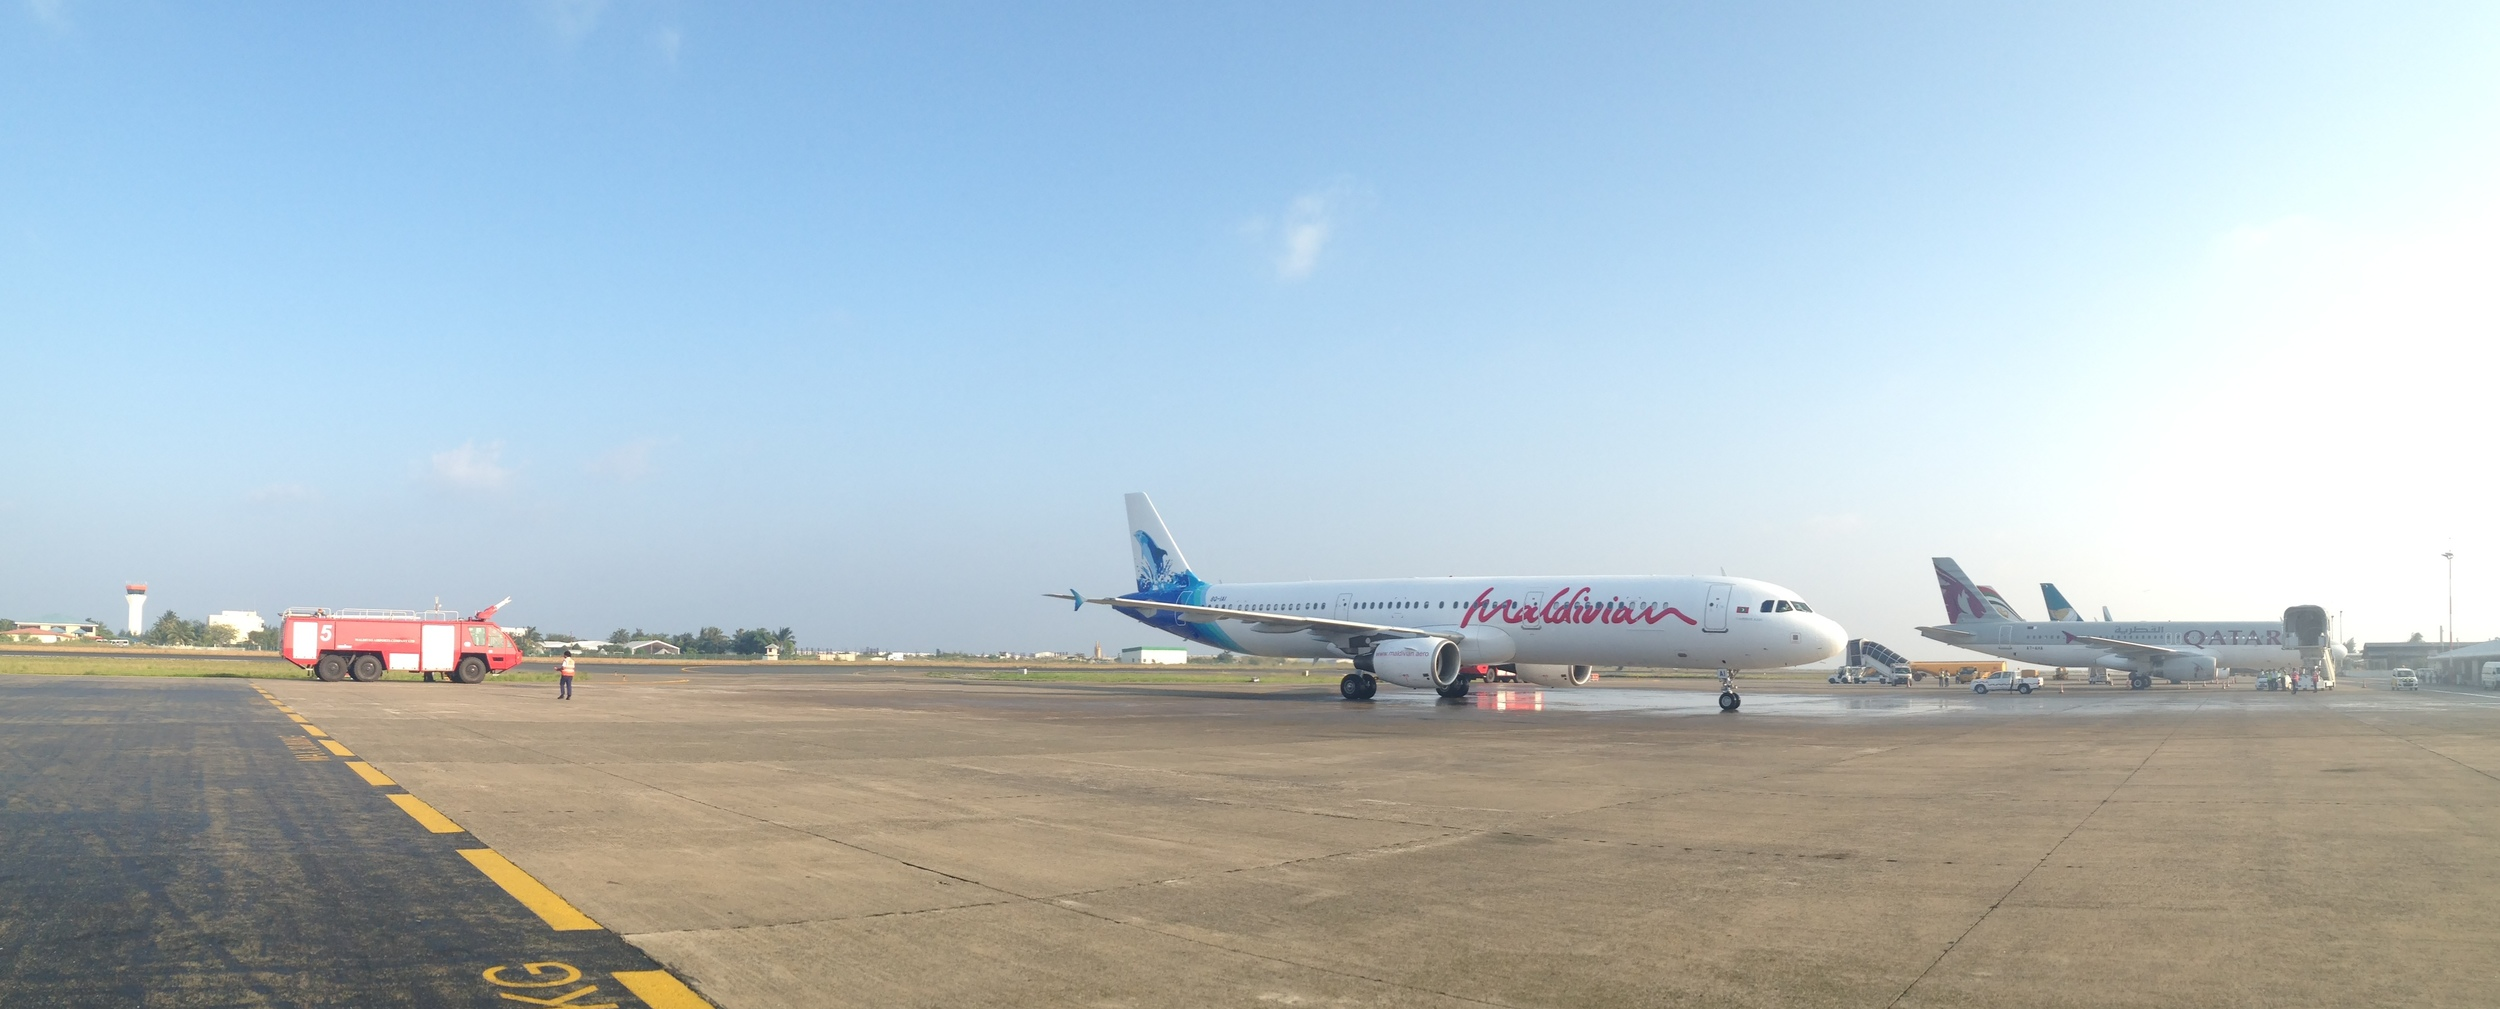 Maldivian's A321, immediately after the required water salute